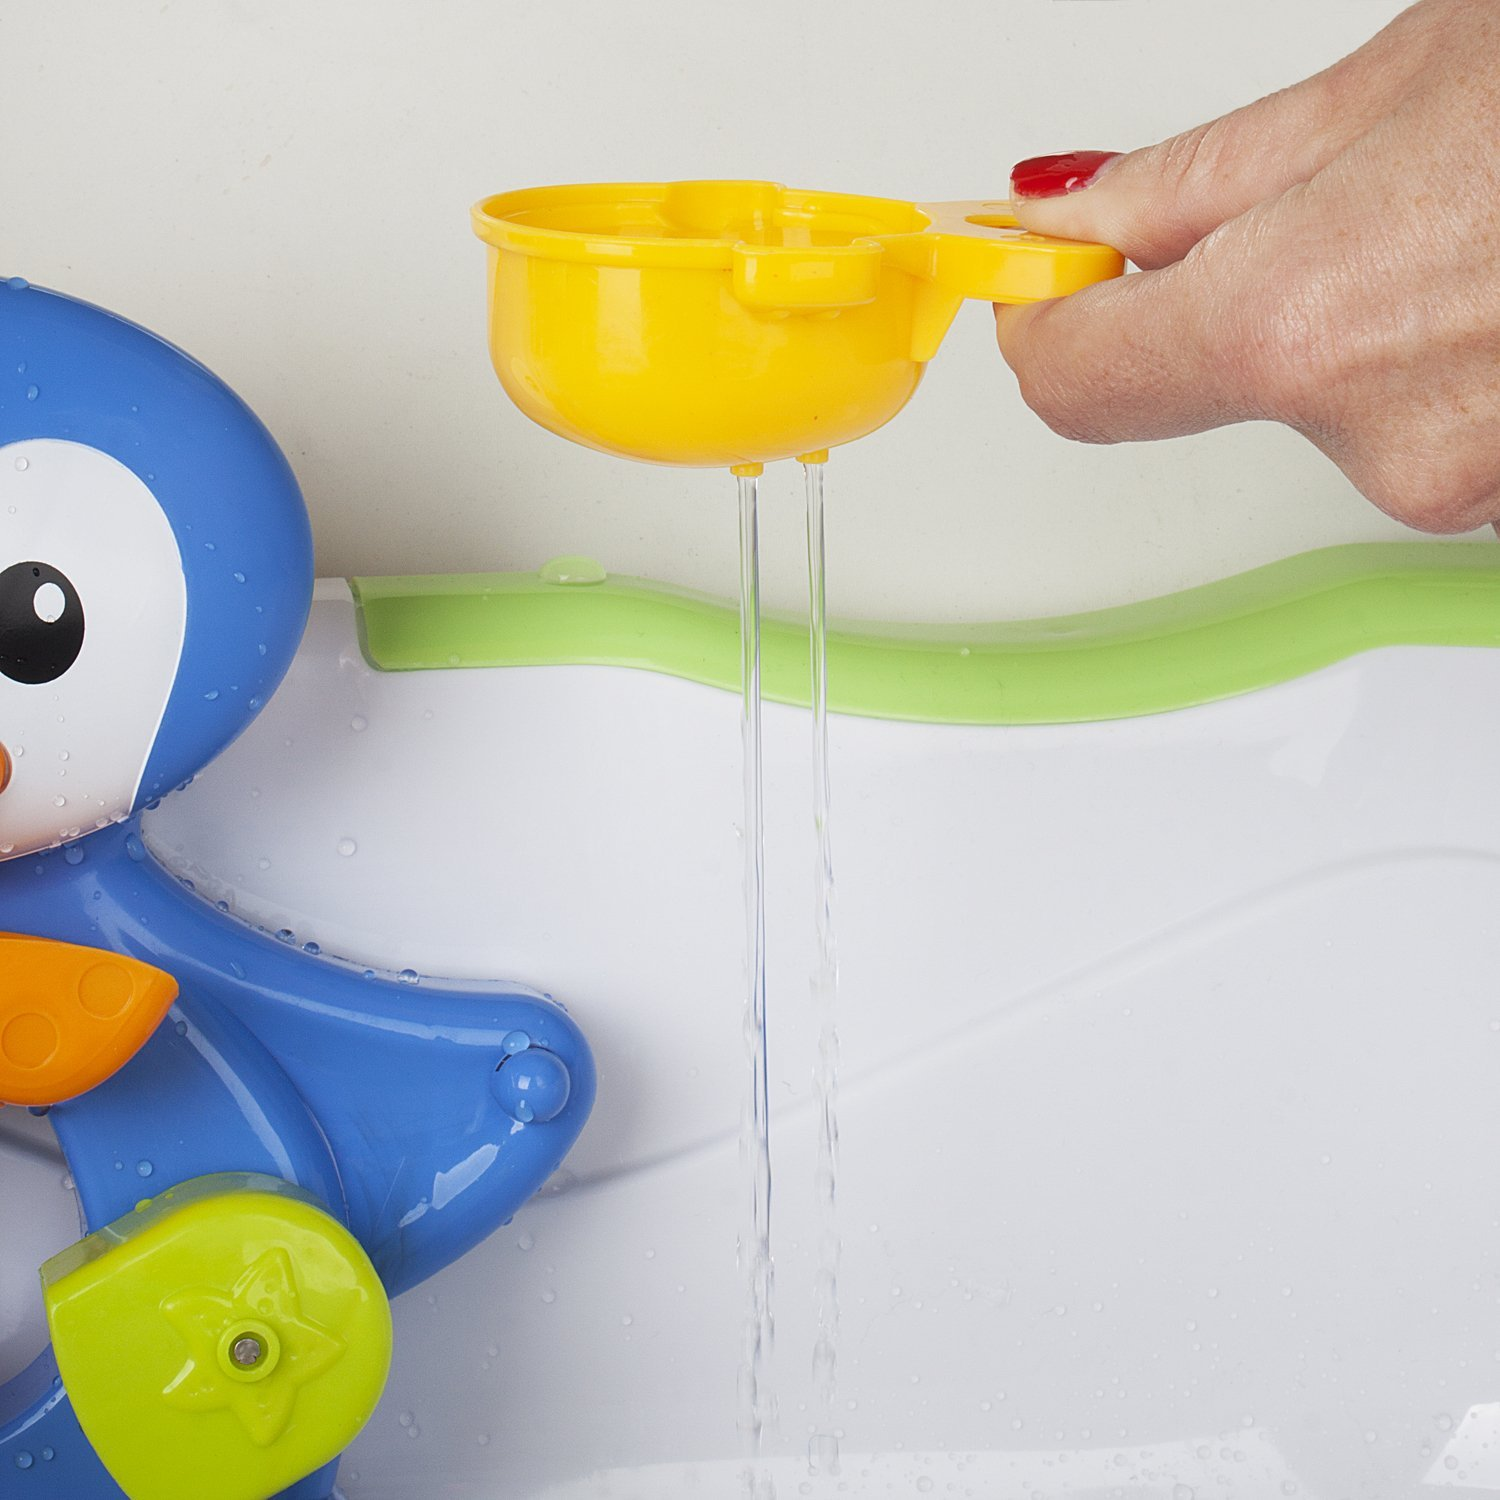 Bath Toys For Toddlers Interactive and Educational Fun Bath Time